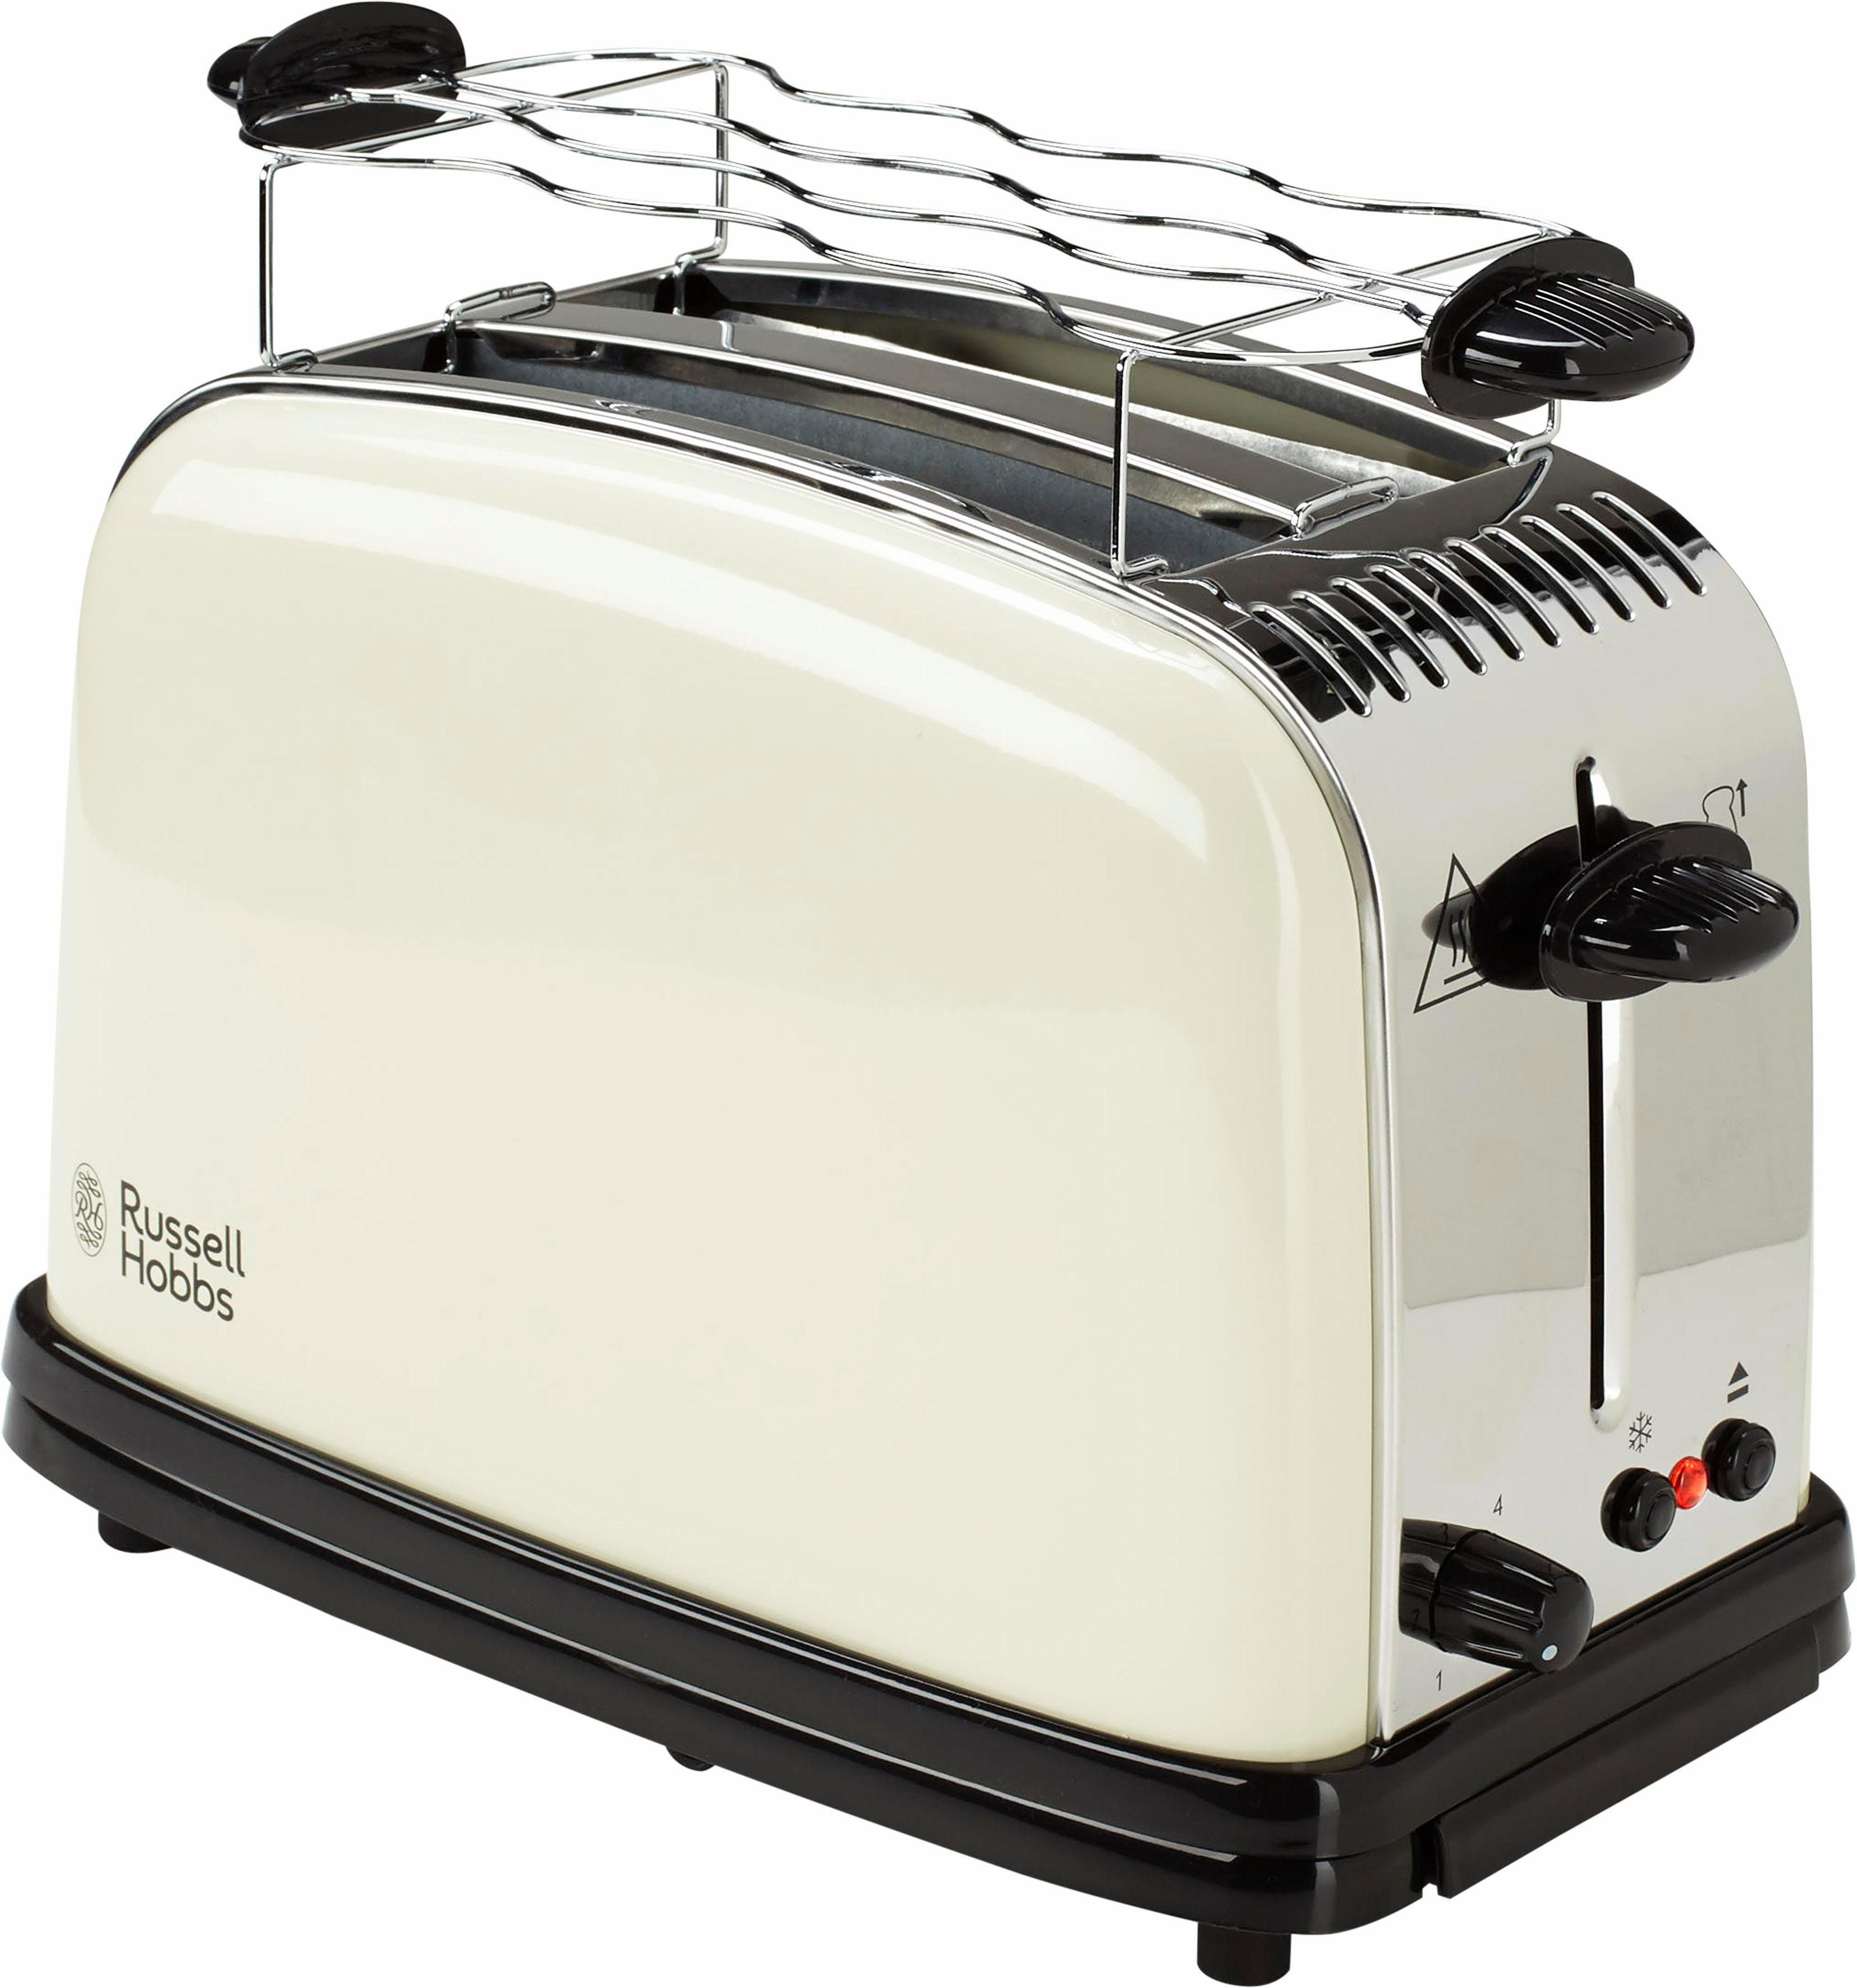 RUSSELL HOBBS Toaster Colours Plus+ Classic Cream 23334-56, 1670 W